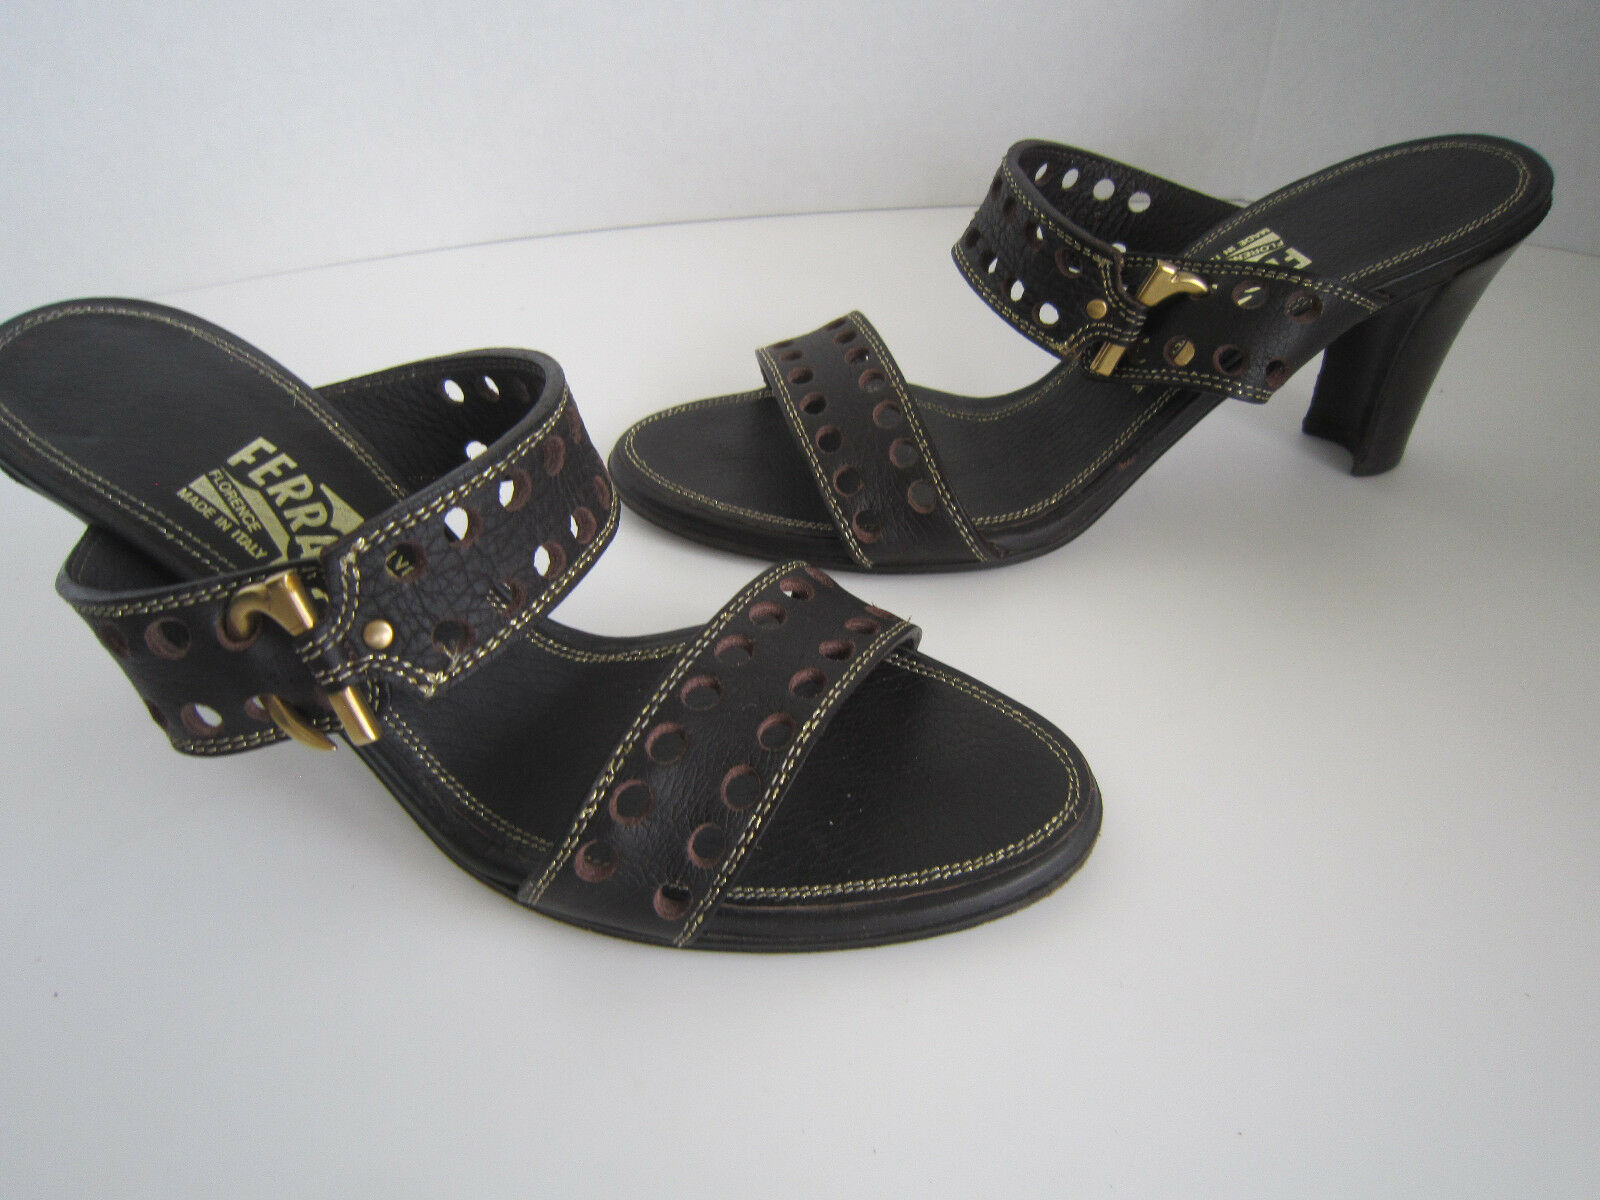 Salvatore Ferragamo  Slide Mules Sandals  Brown Leather Perforated Sz 81 2 AA